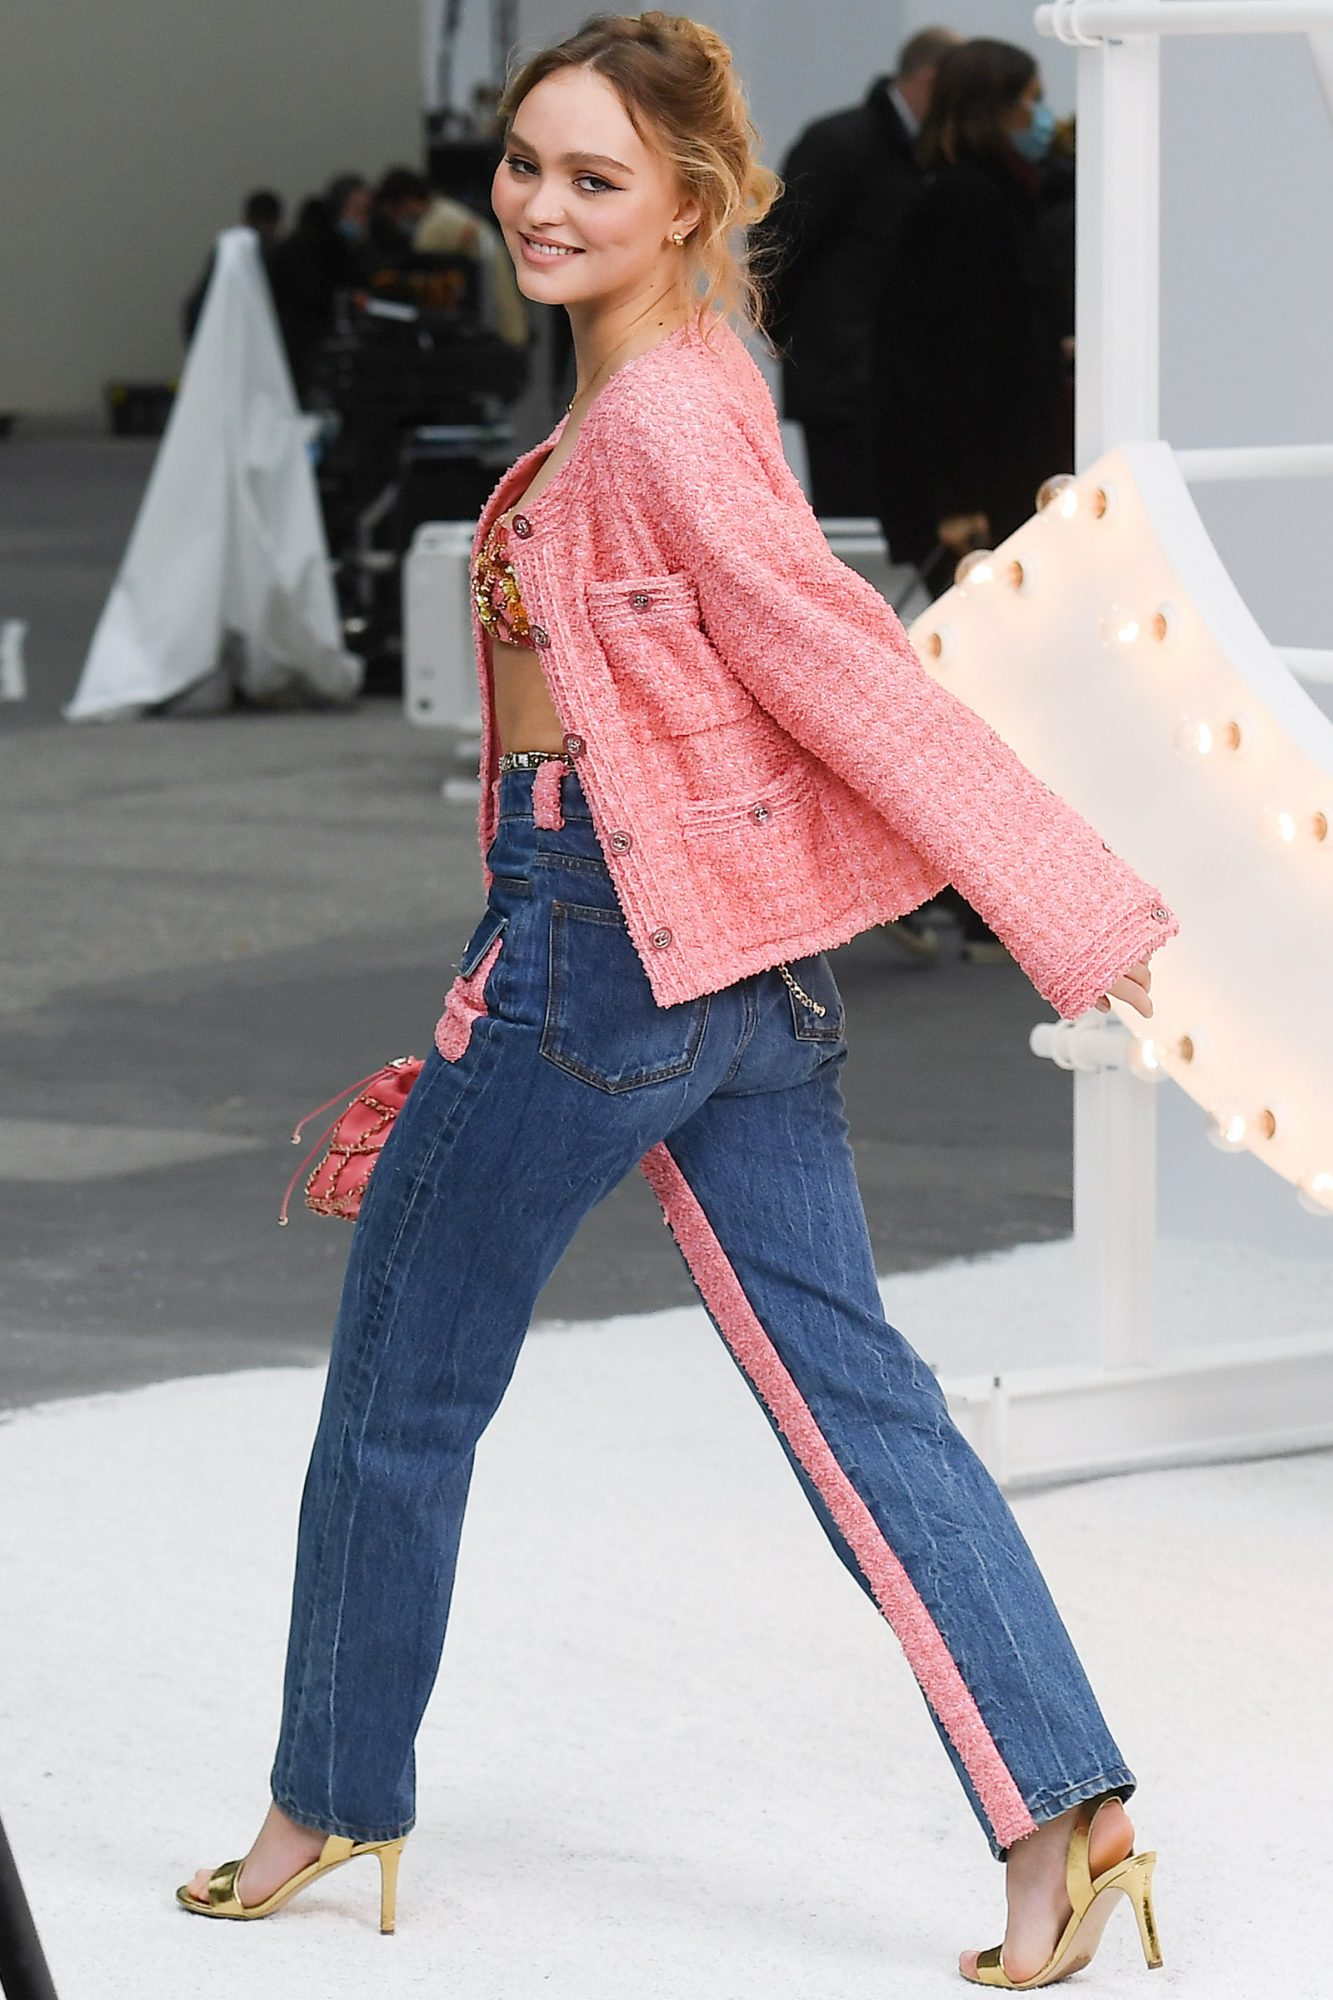 Lily-Rose Depp attends the Chanel Womenswear Spring/Summer 2021 show as part of Paris Fashion Week on October 06, 2020 in Paris, France